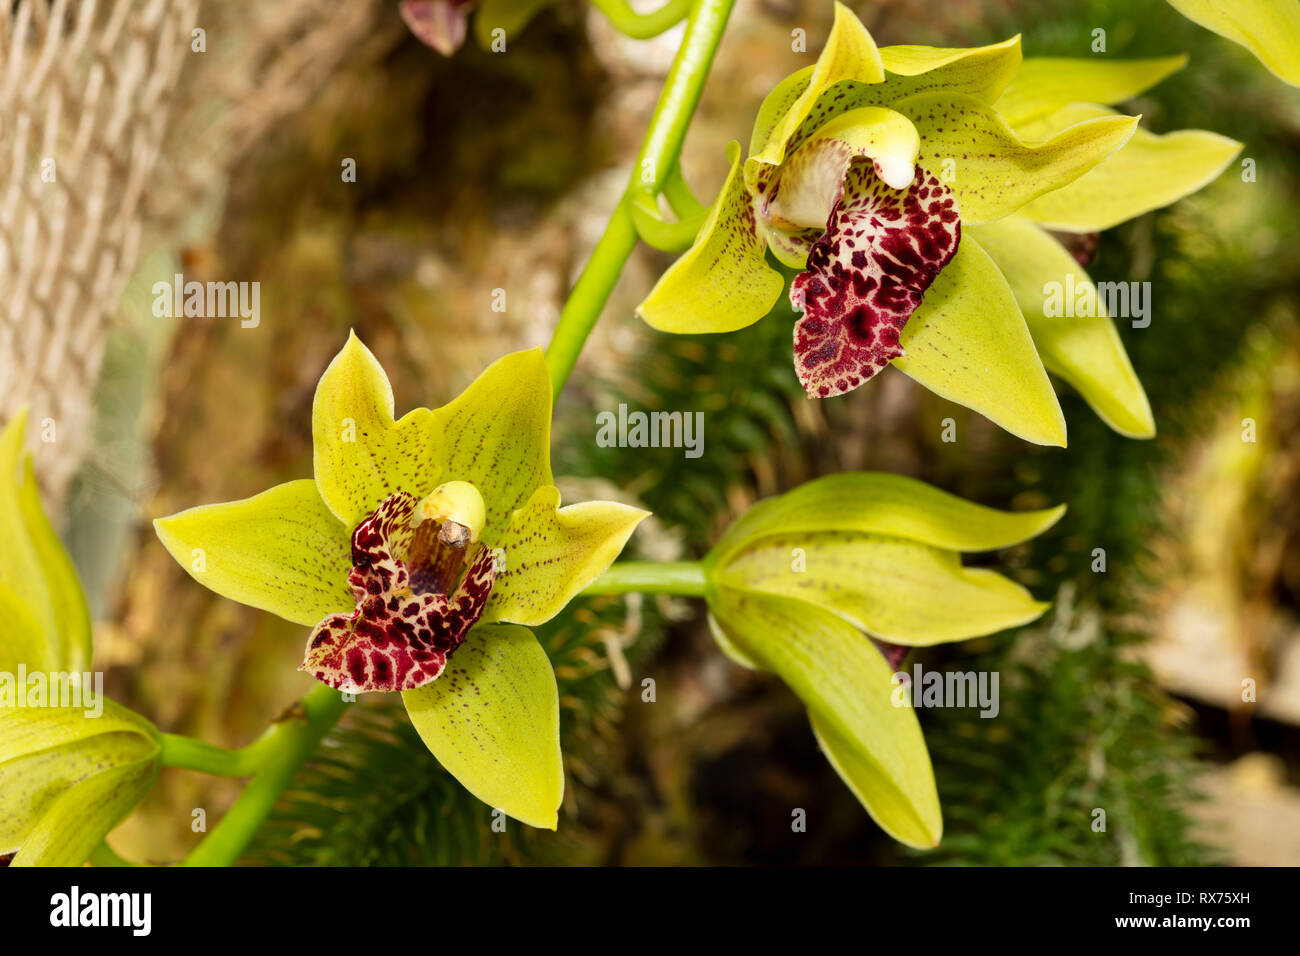 botany, orchid, (orchidaceae), blossom, Additional-Rights-Clearance-Info-Not-Available - Stock Image